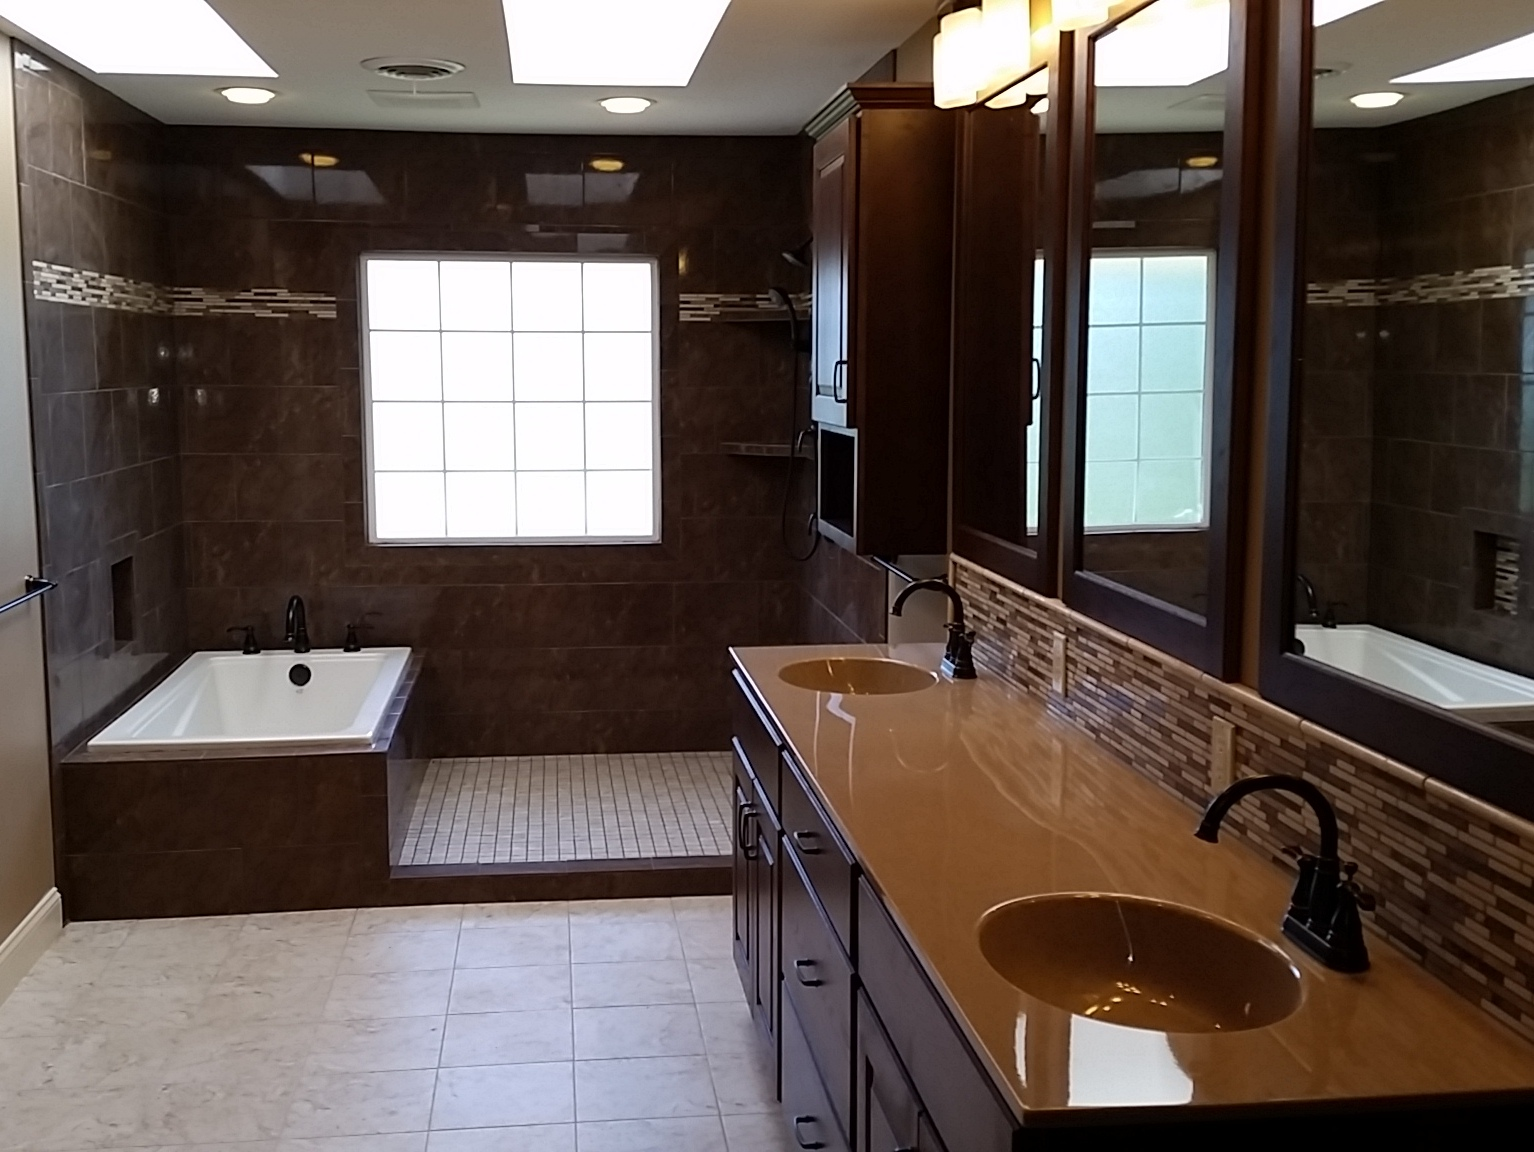 Kitchen Bathroom Remodeling Manhattan KS Vanguard - Bathroom remodeling contractors kansas city